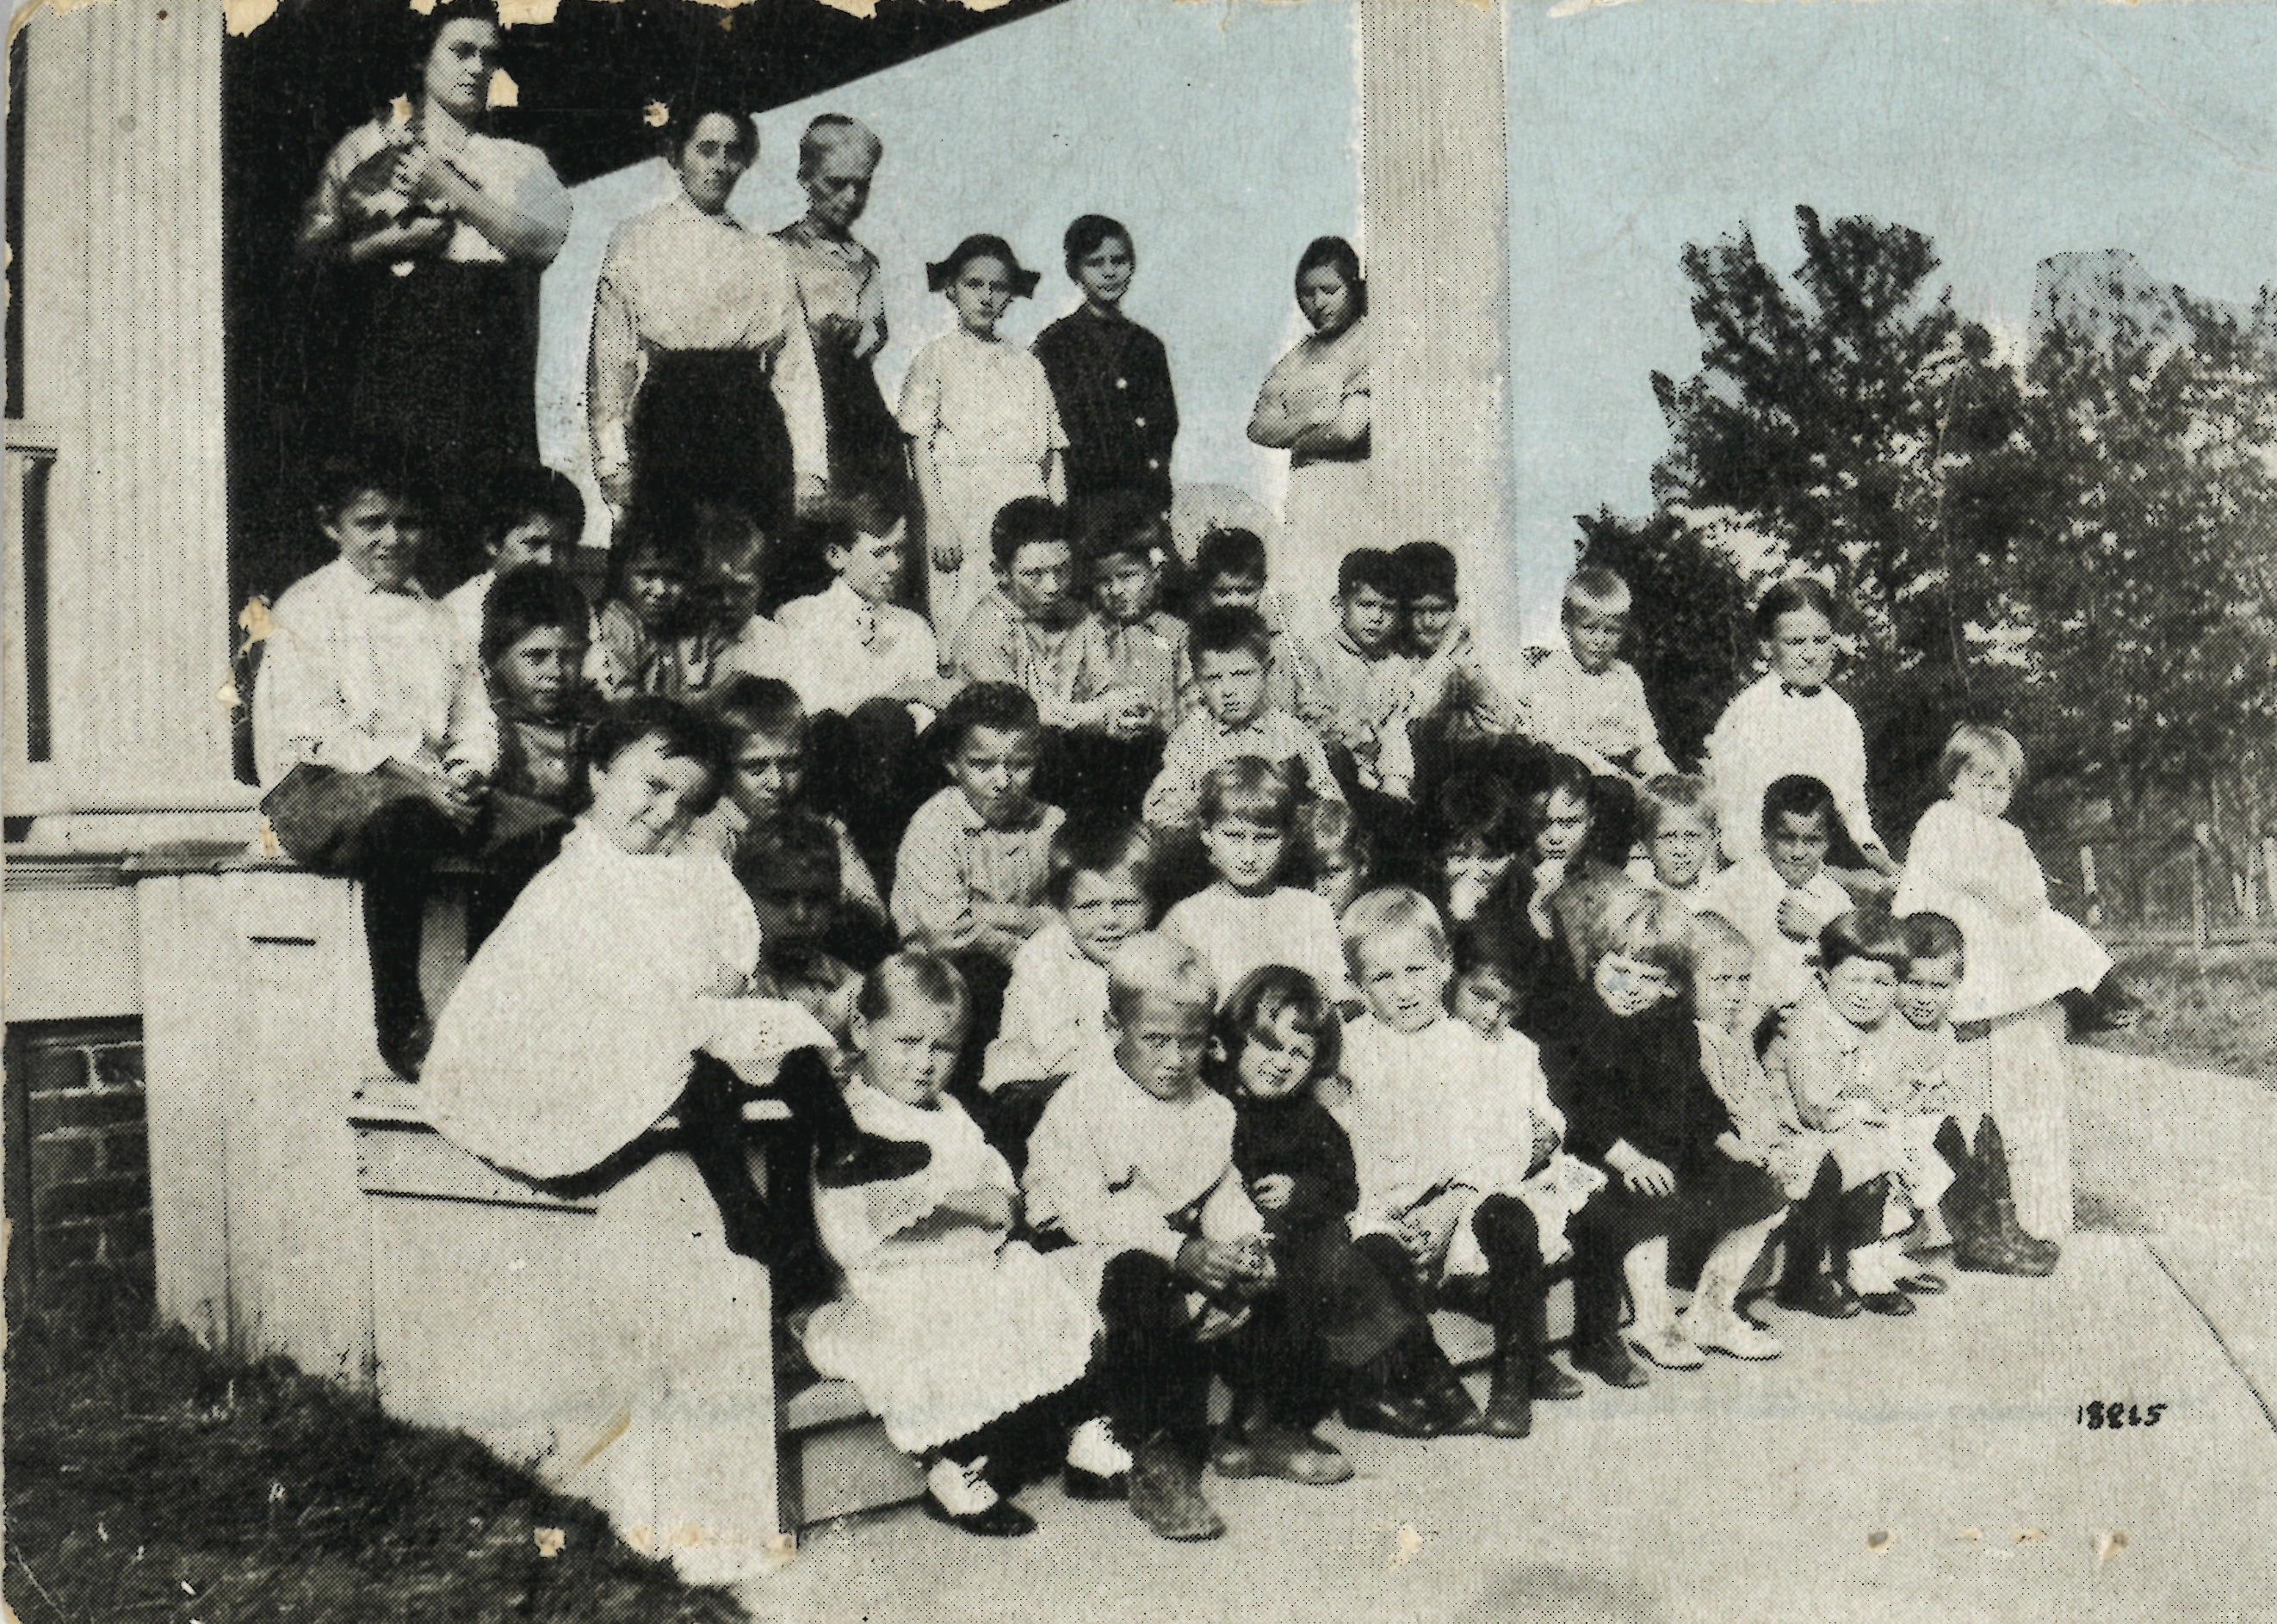 Children of the Orphans' and Children's Home circa 1920